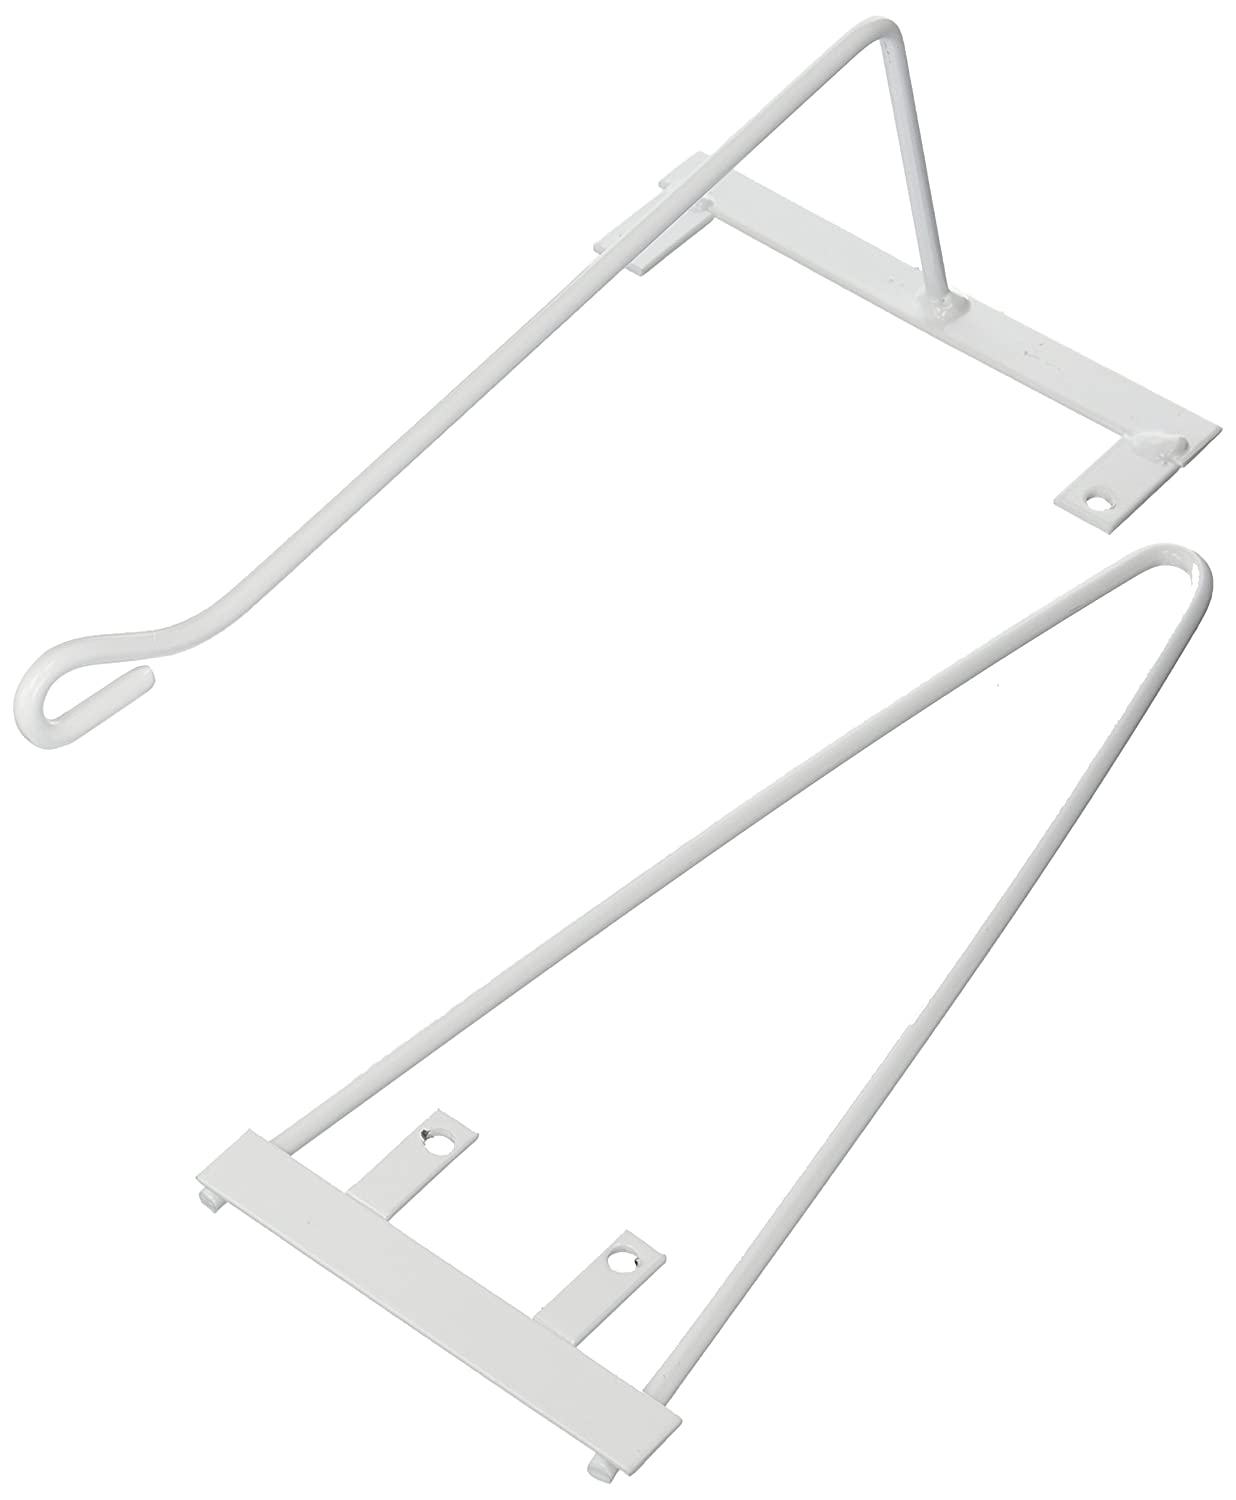 The Easy-Clean Auto-Filling Water Bowl 805342100063 Hanging Bracket